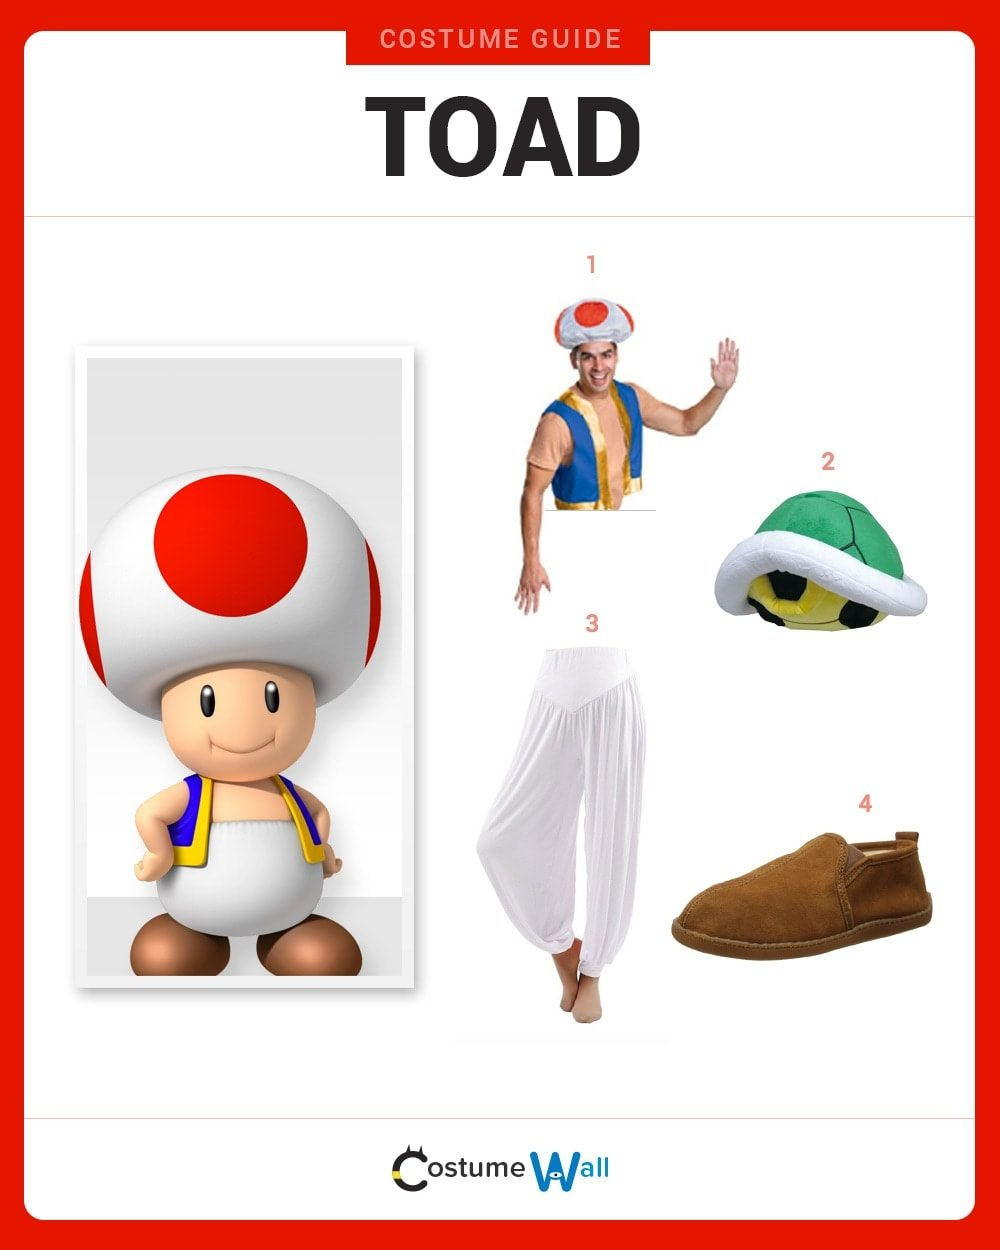 Toad Costume Guide